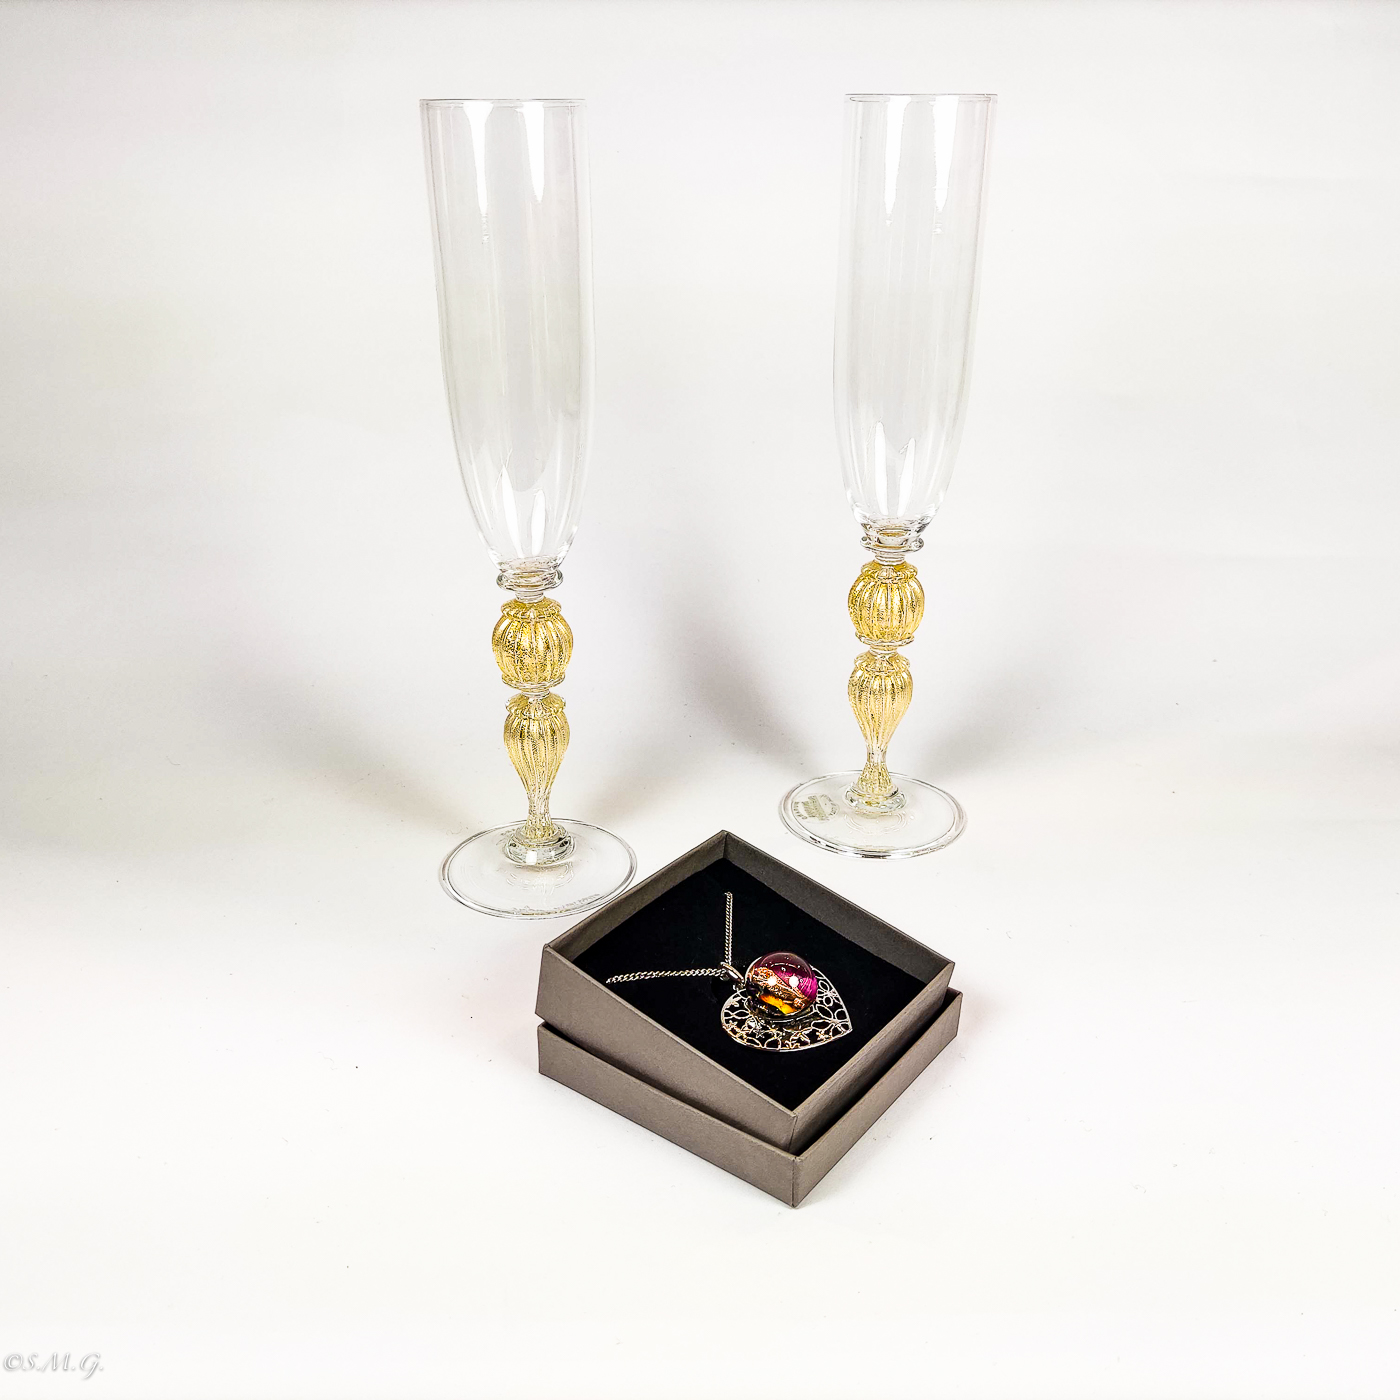 2 Murano Glass chalices with 24k gold and heart shaped pendant